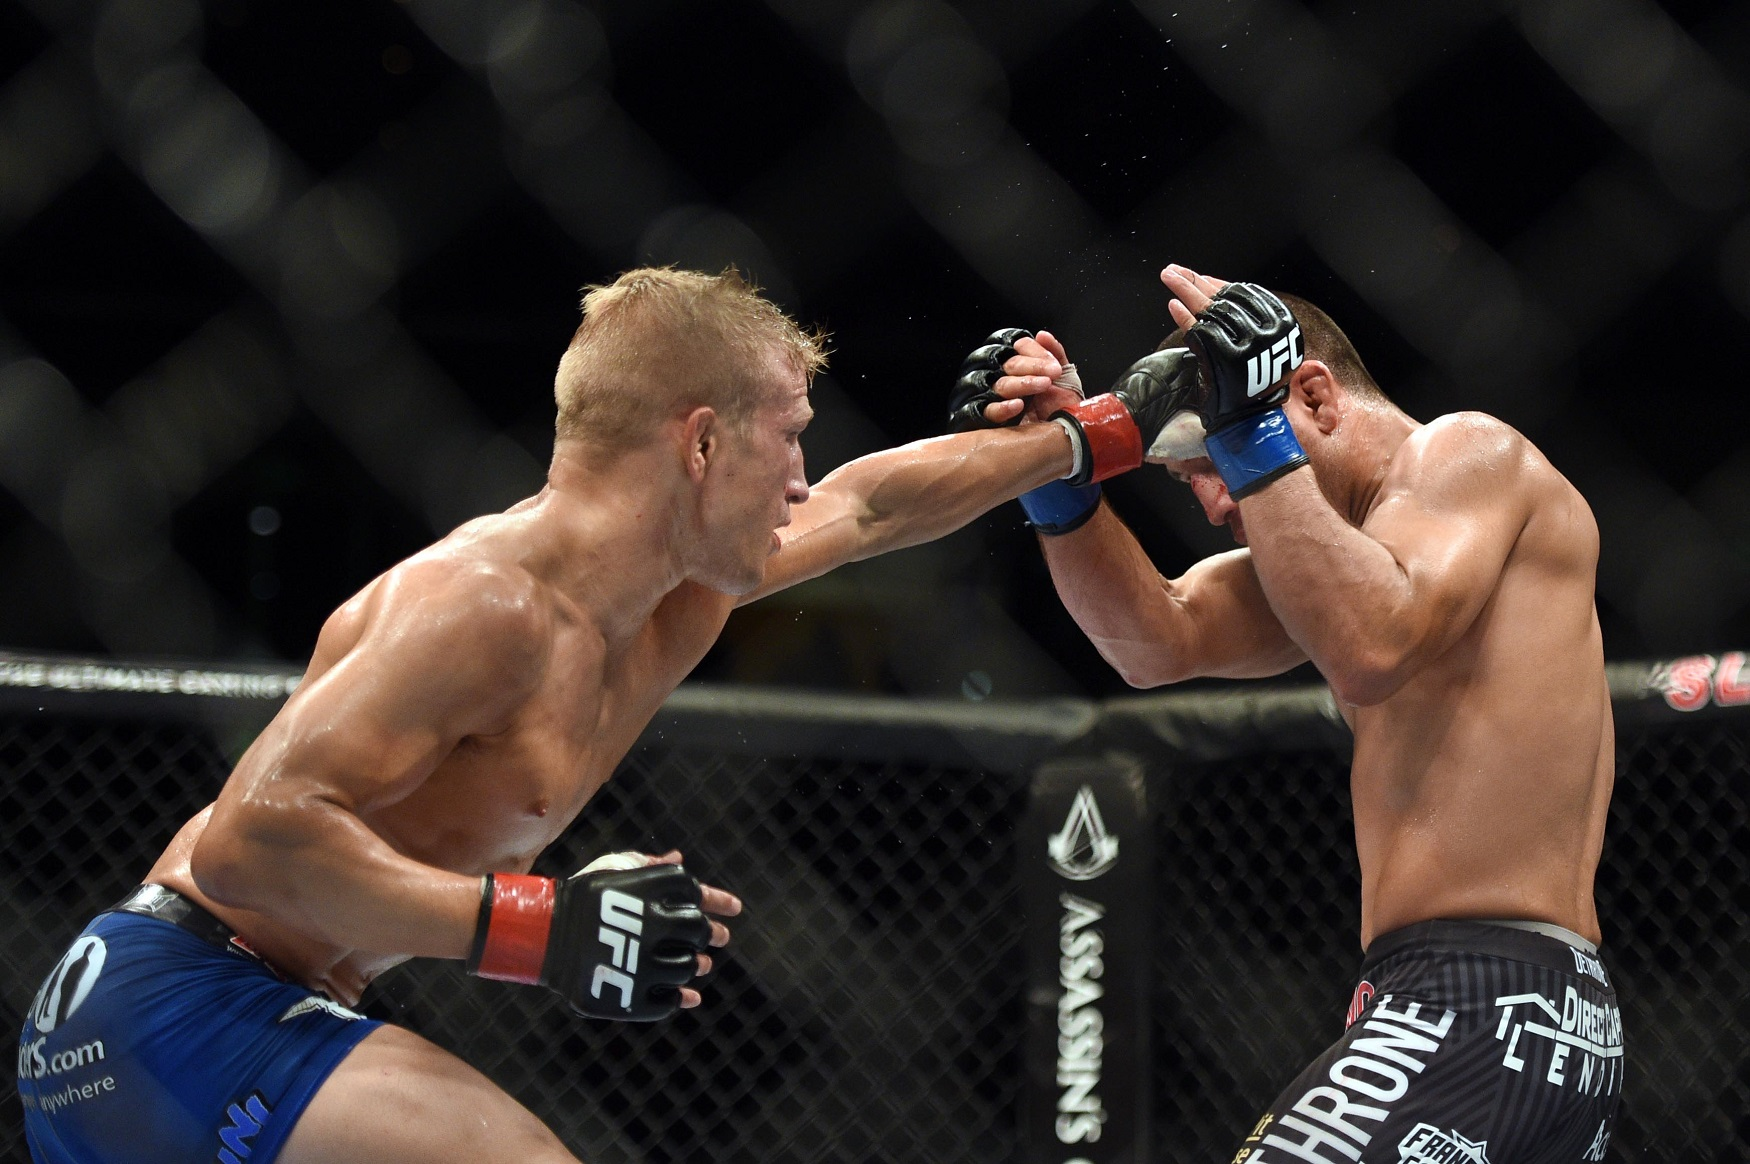 The problem with UFC relying on overachievers